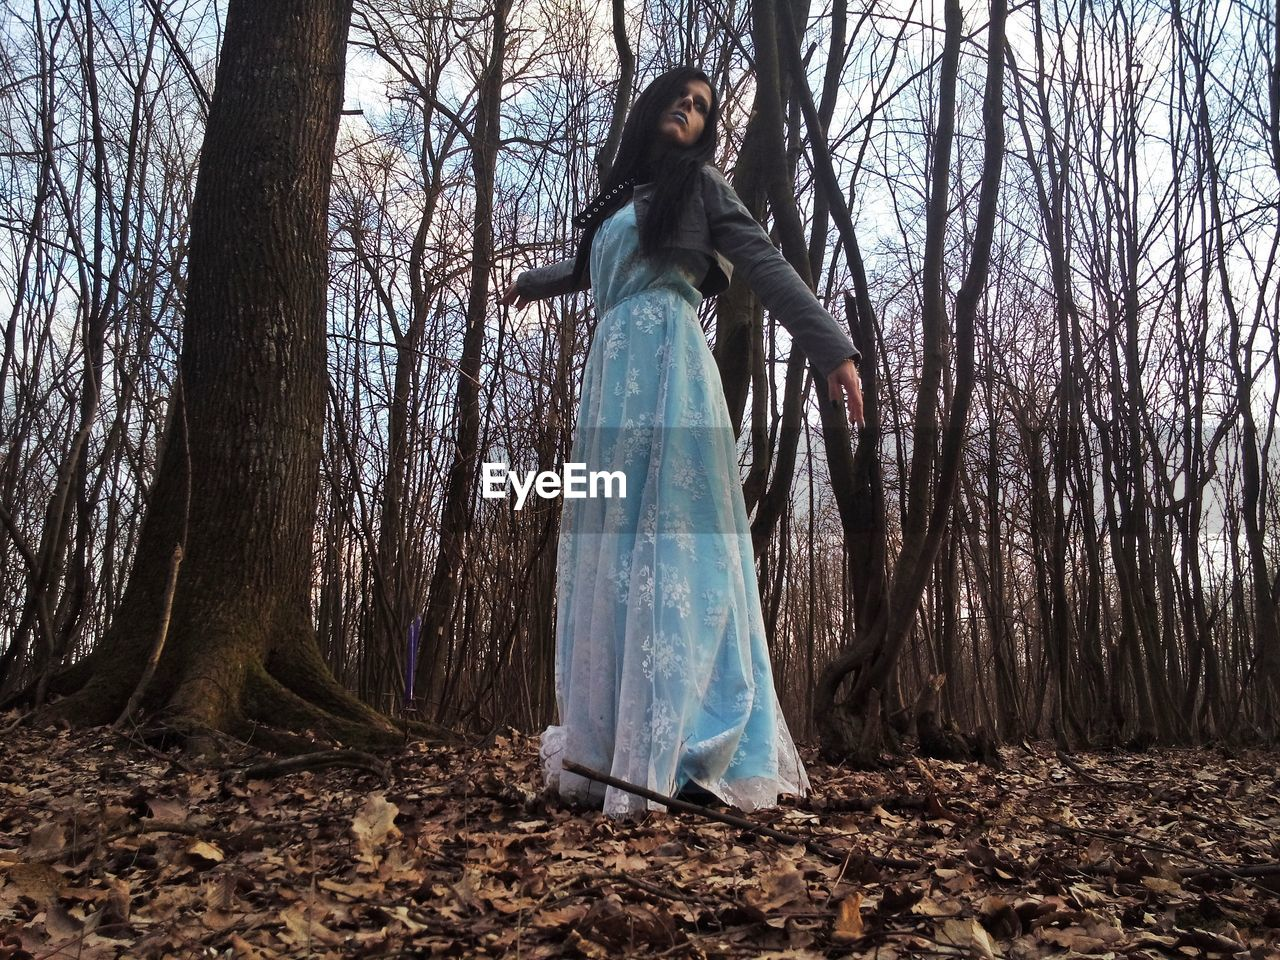 Low angle view of young woman standing in forest